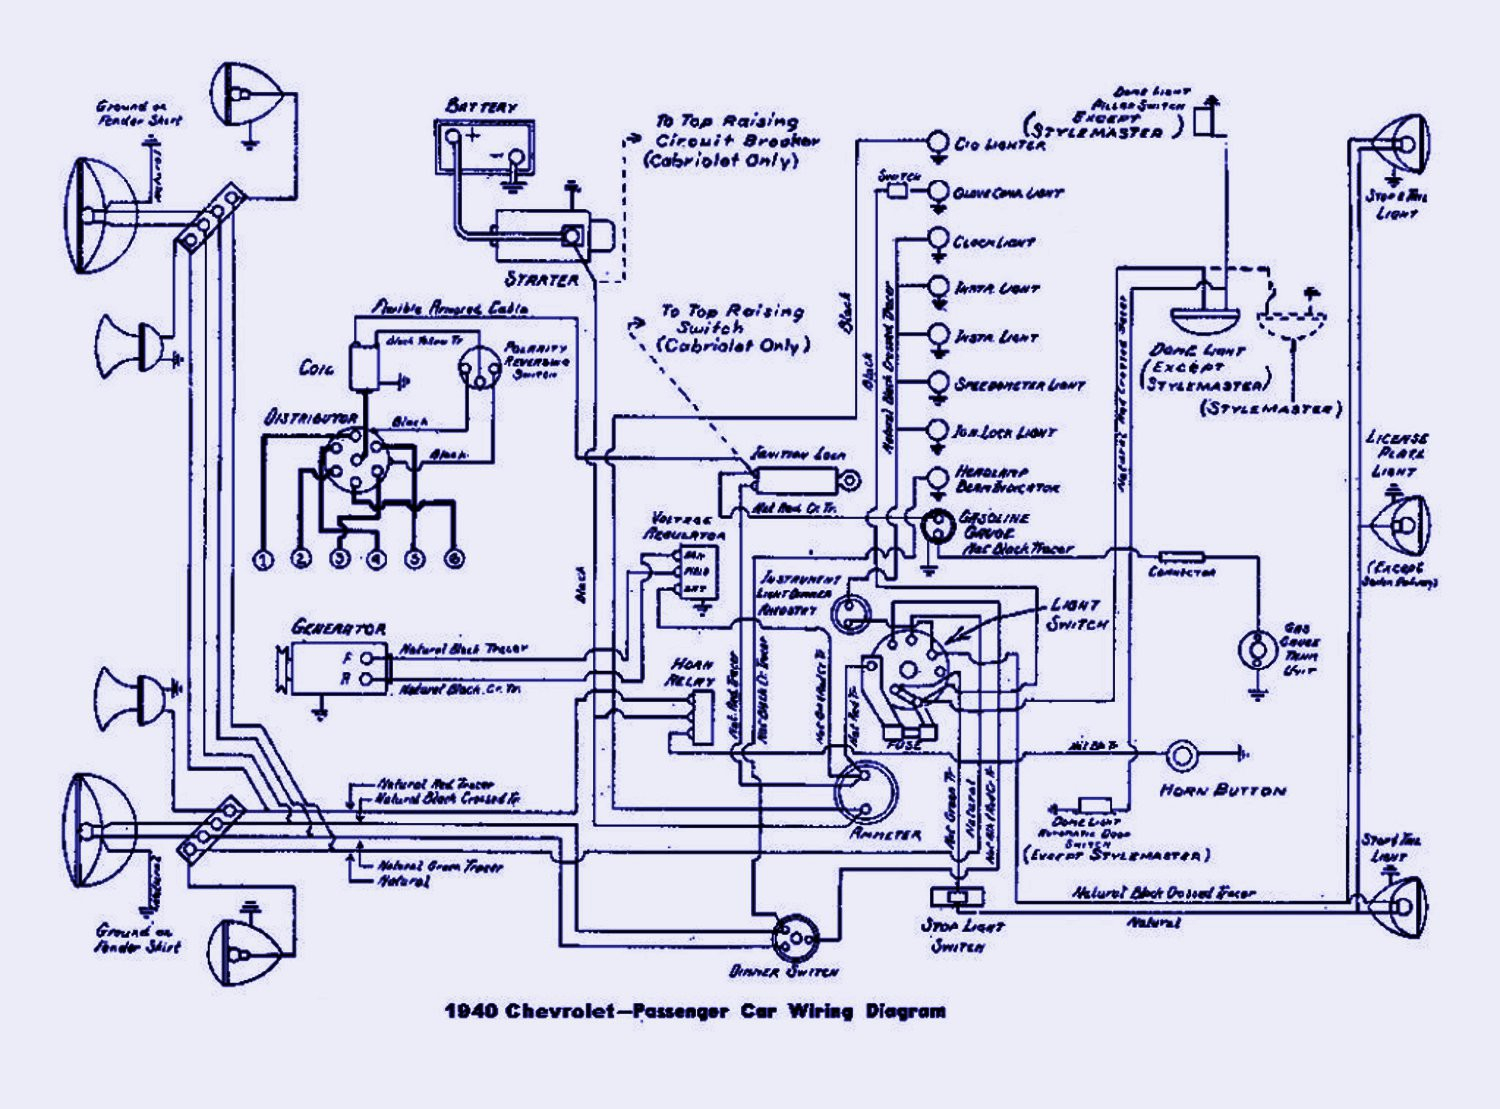 hight resolution of atwood wiring diagram model gc10a 3e 18 2 kenmo lp de u2022atwood gc10a 4e wiring